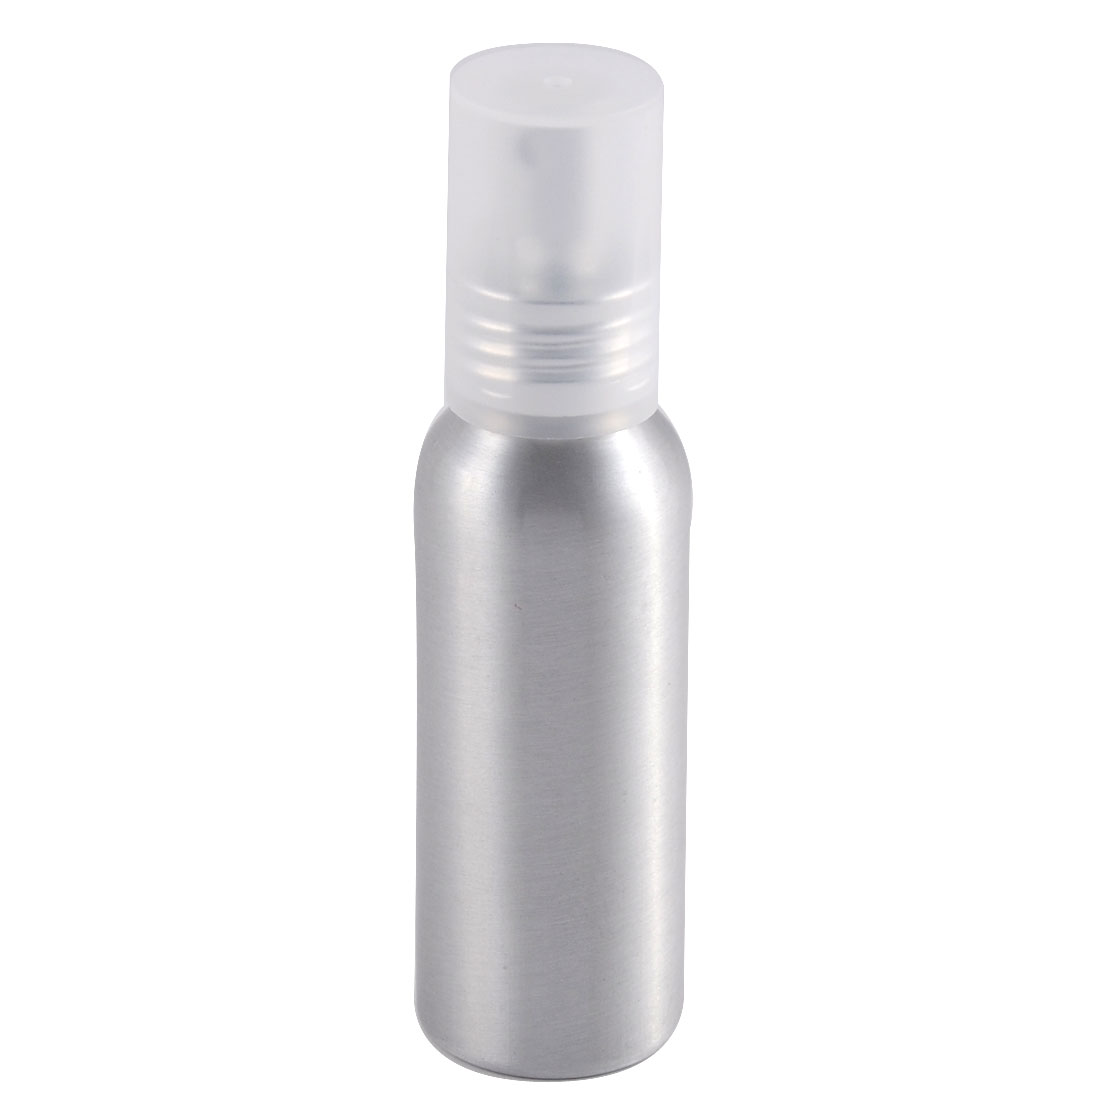 Travel Aluminum Cosmetic Emulsion Press Pump Fine Mist Spray Bottle Silver Tone 80ml